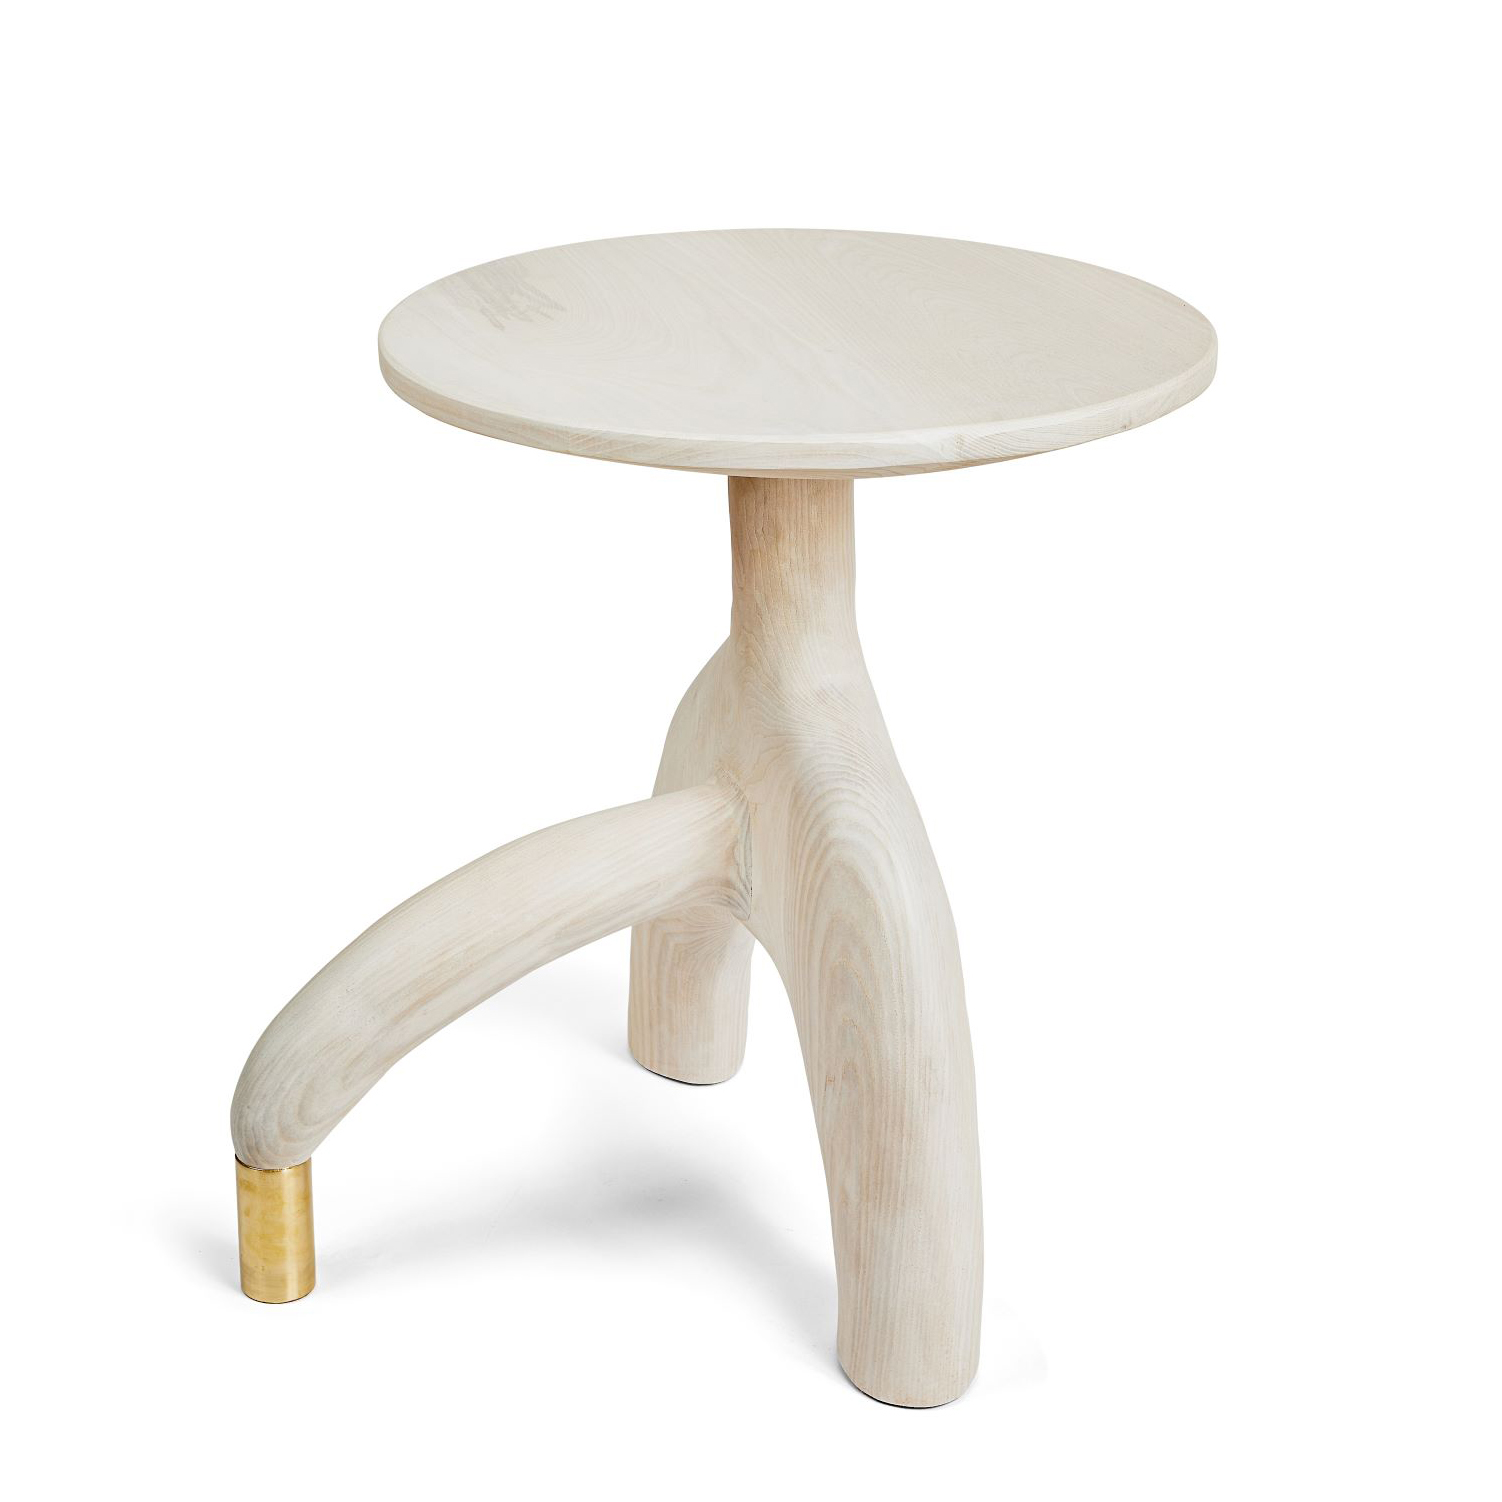 001_SculpturalSideTable_CMccafferty_4